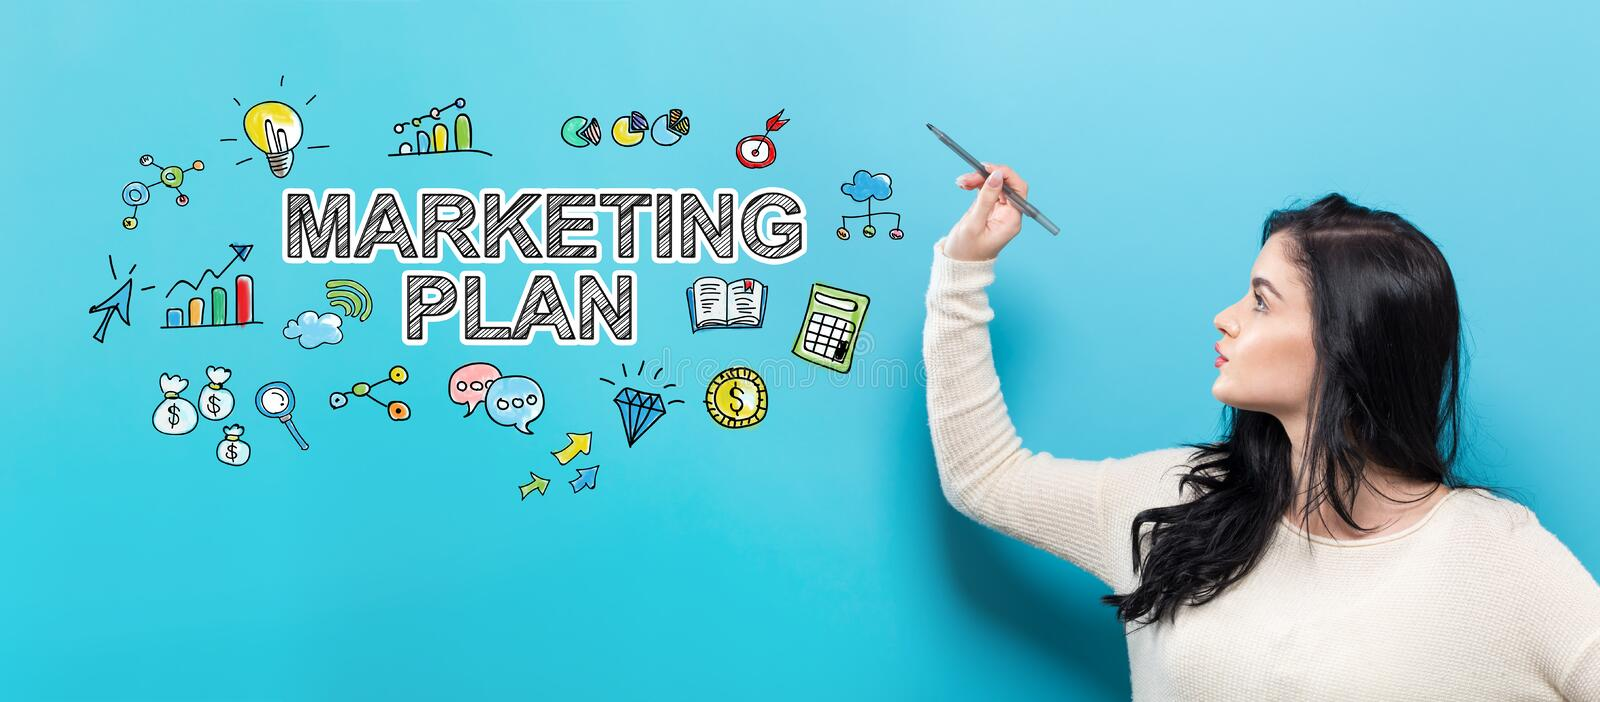 Marketing Plan with young woman holding a pen royalty free stock images